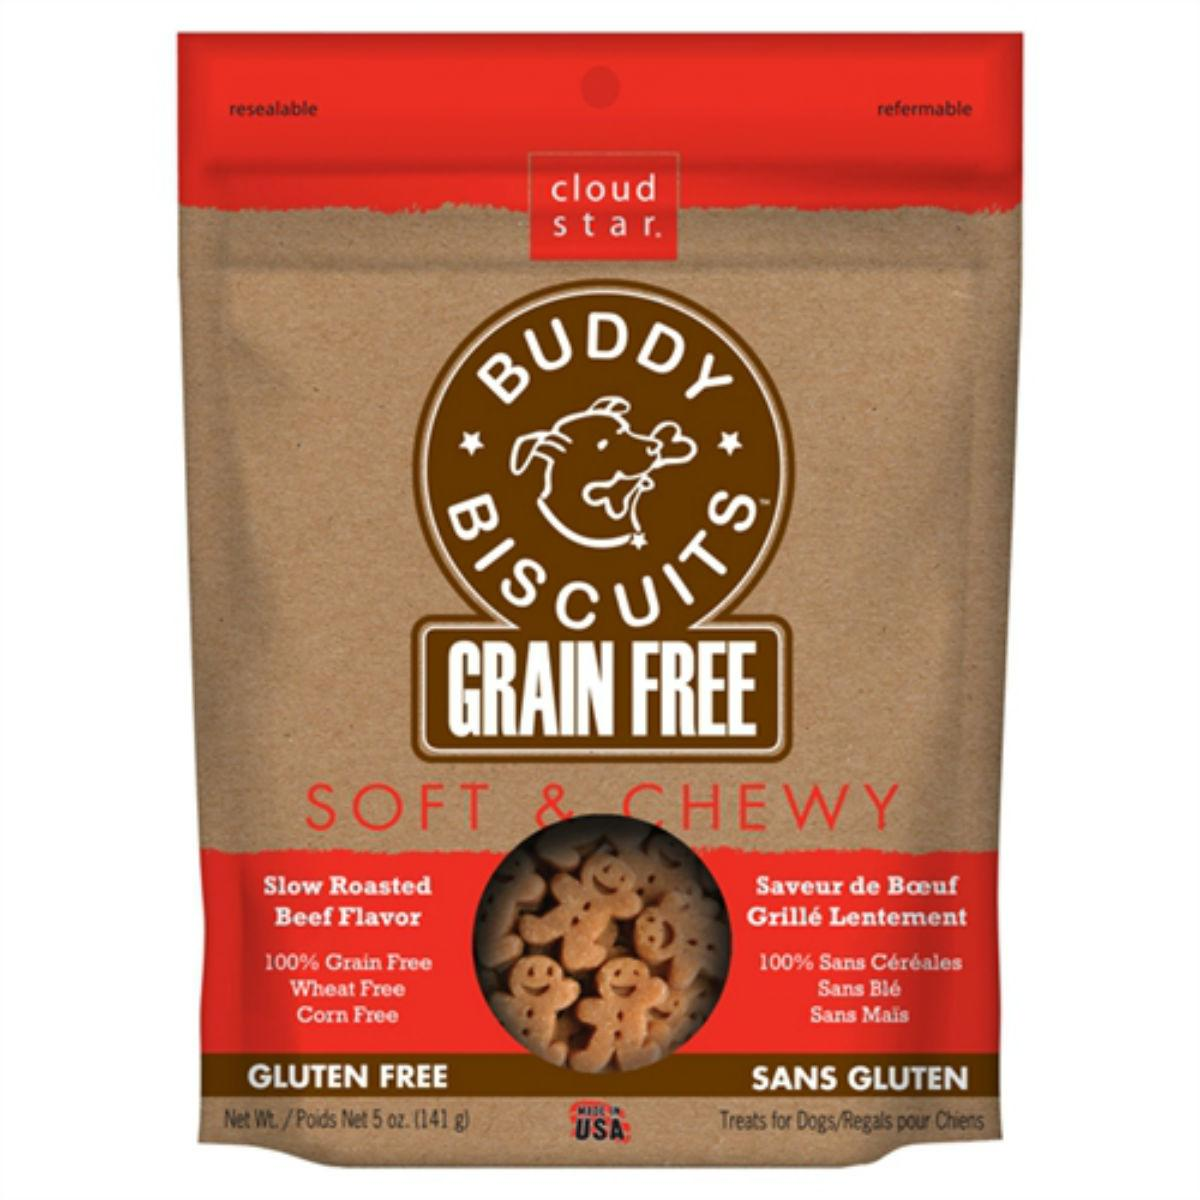 Buddy Biscuits Grain-Free Soft & Chewy Dog Treat - Slow Roasted Beef